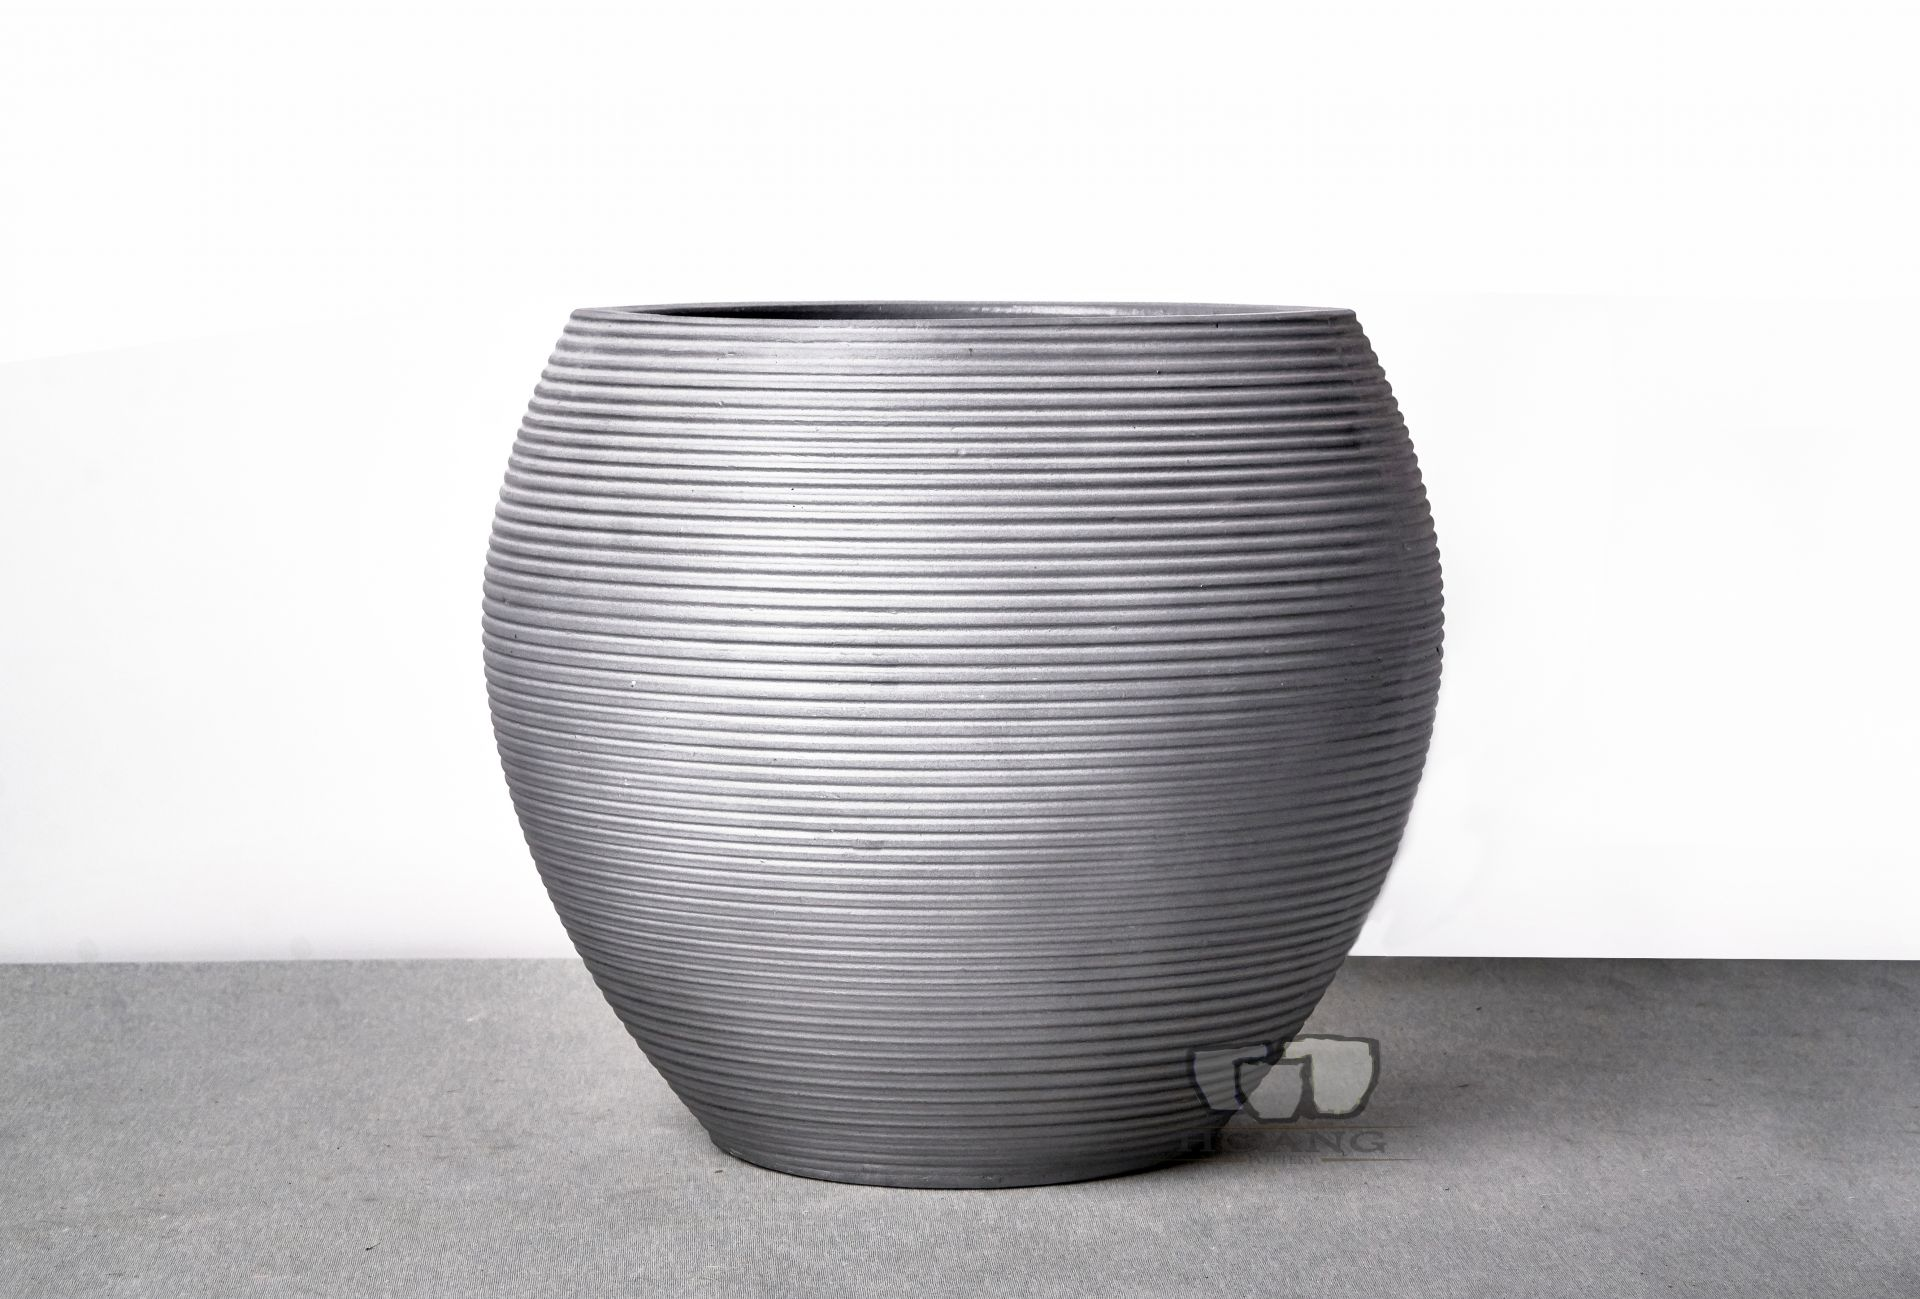 THE UNIQUE FEATURES OF CEMENT PLANTERS IN INTERIOR DECORATION